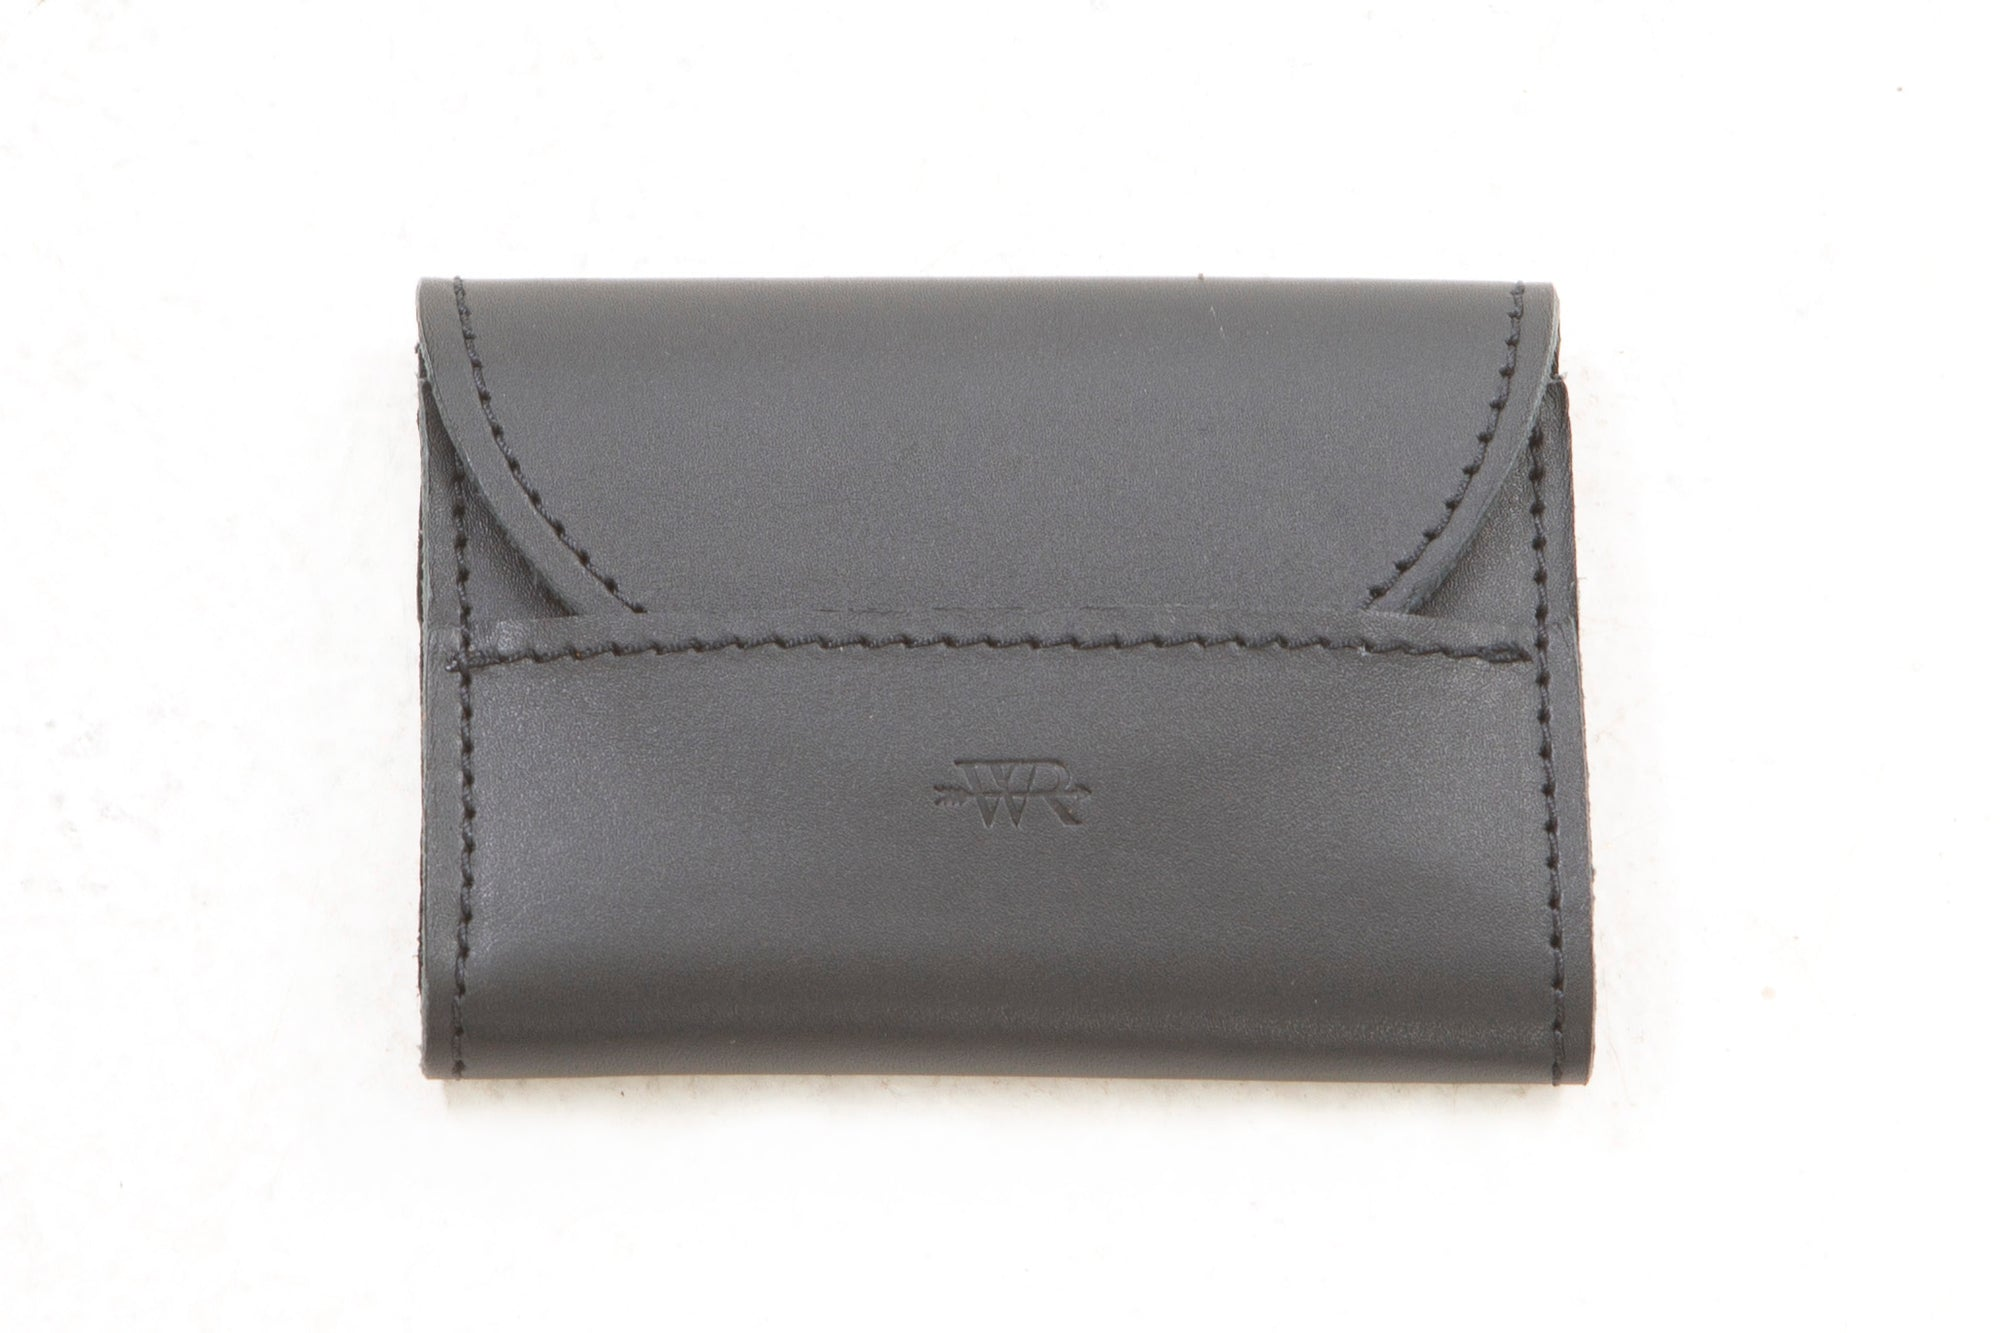 Simple Flap Closure Leather Wallet